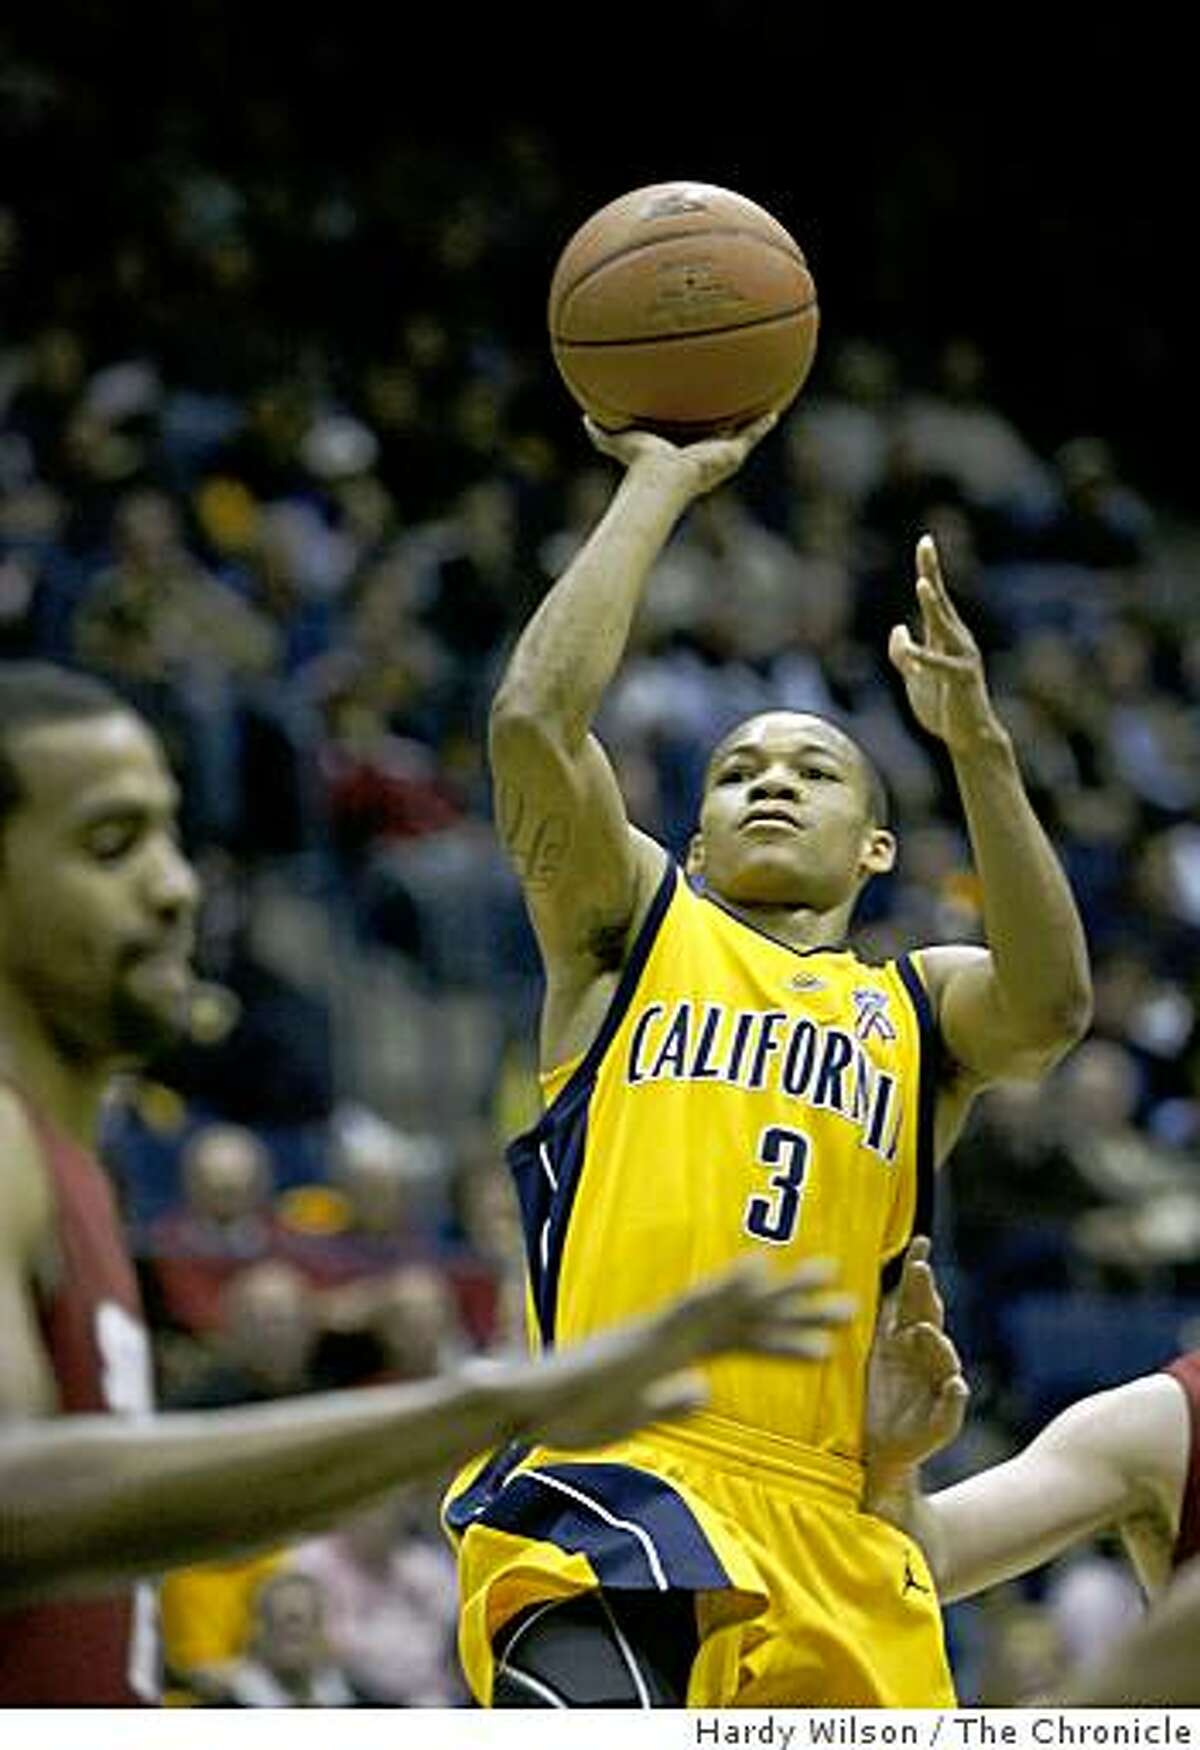 Cal Bears guard Jerome Randle (3) goes up for a shot in the first half against Stanford Cardinals players on Saturday, February 14, 2009, at Haas Pavilion in Berkeley, Calif.